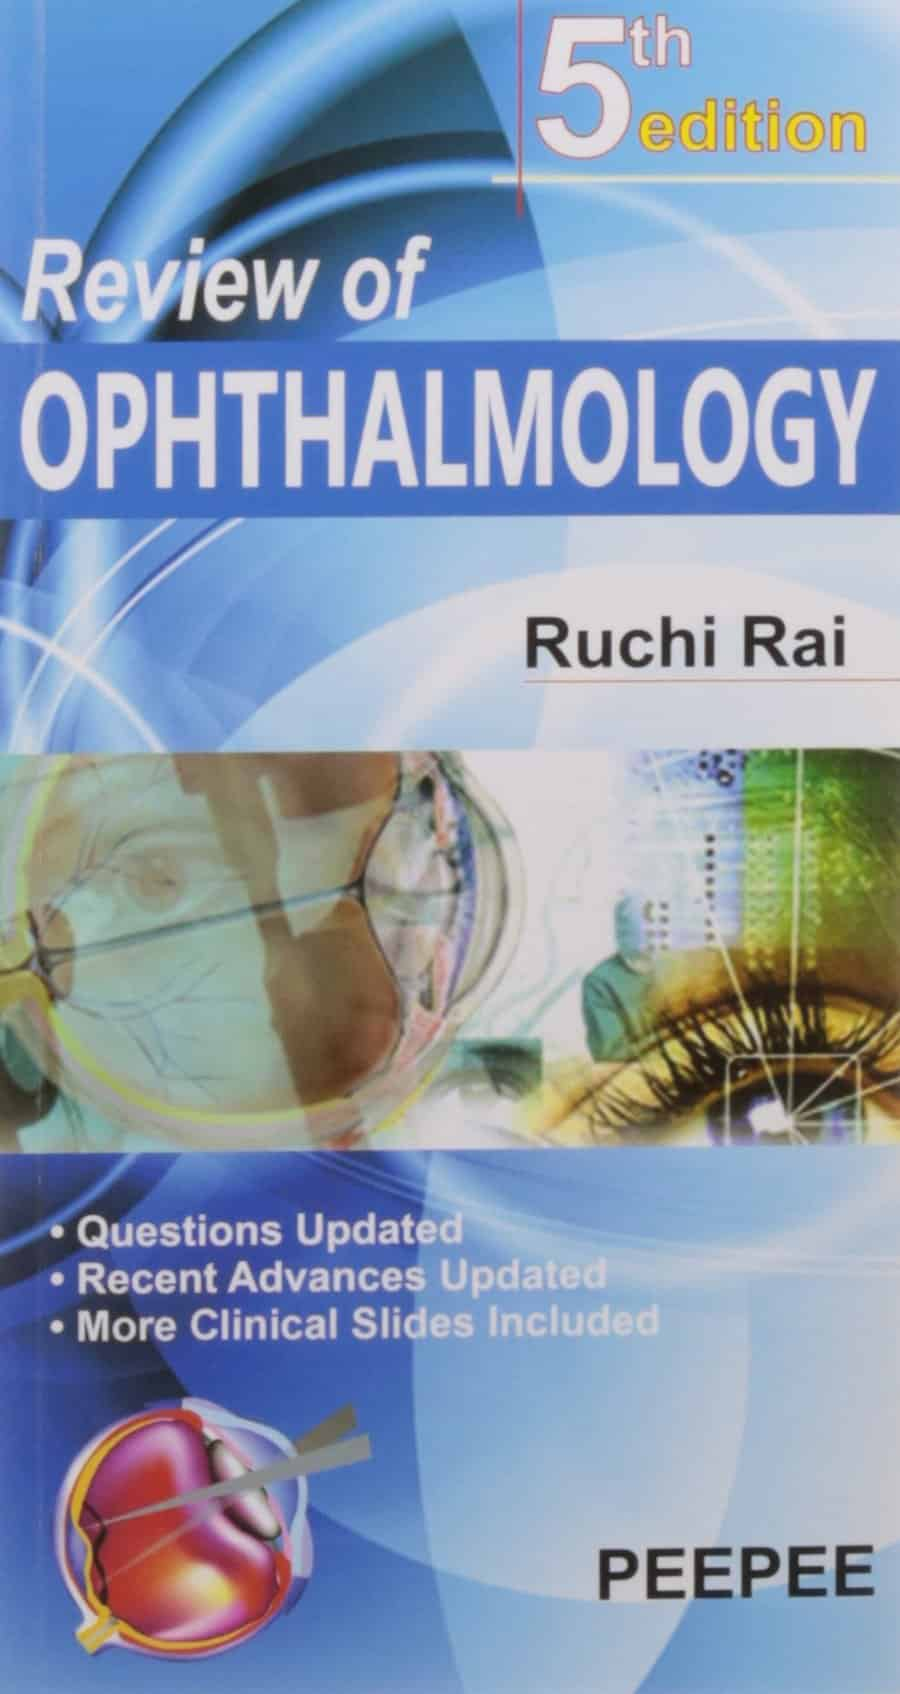 Review of Ophthalmology by Ruchi Rai